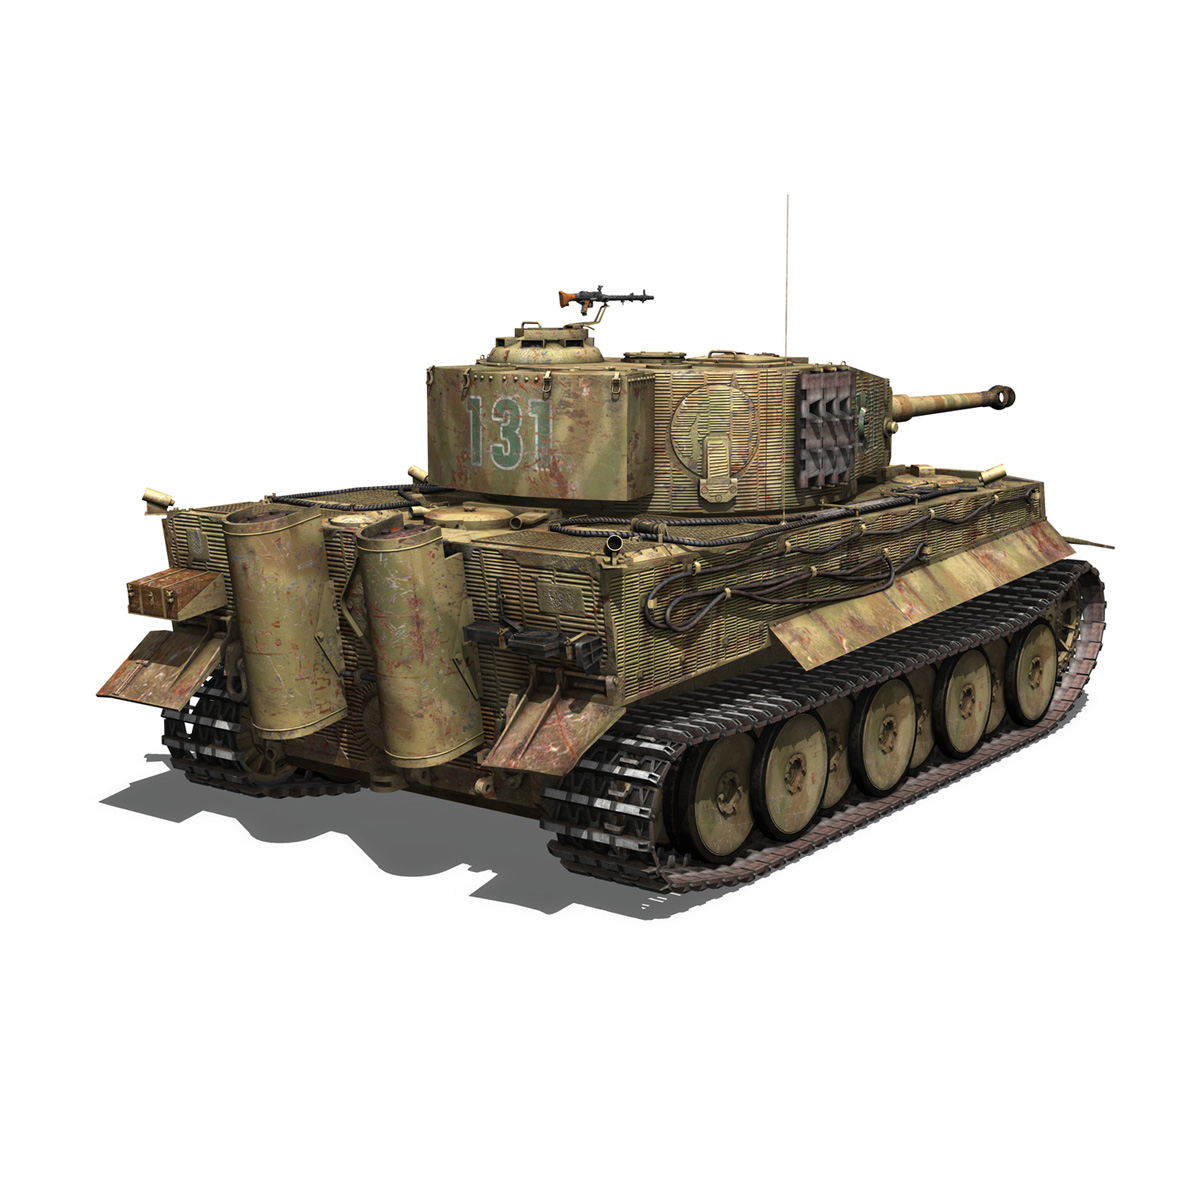 panzer vi – tiger – 131 – mid production 3d model 3ds c4d lwo obj 196887